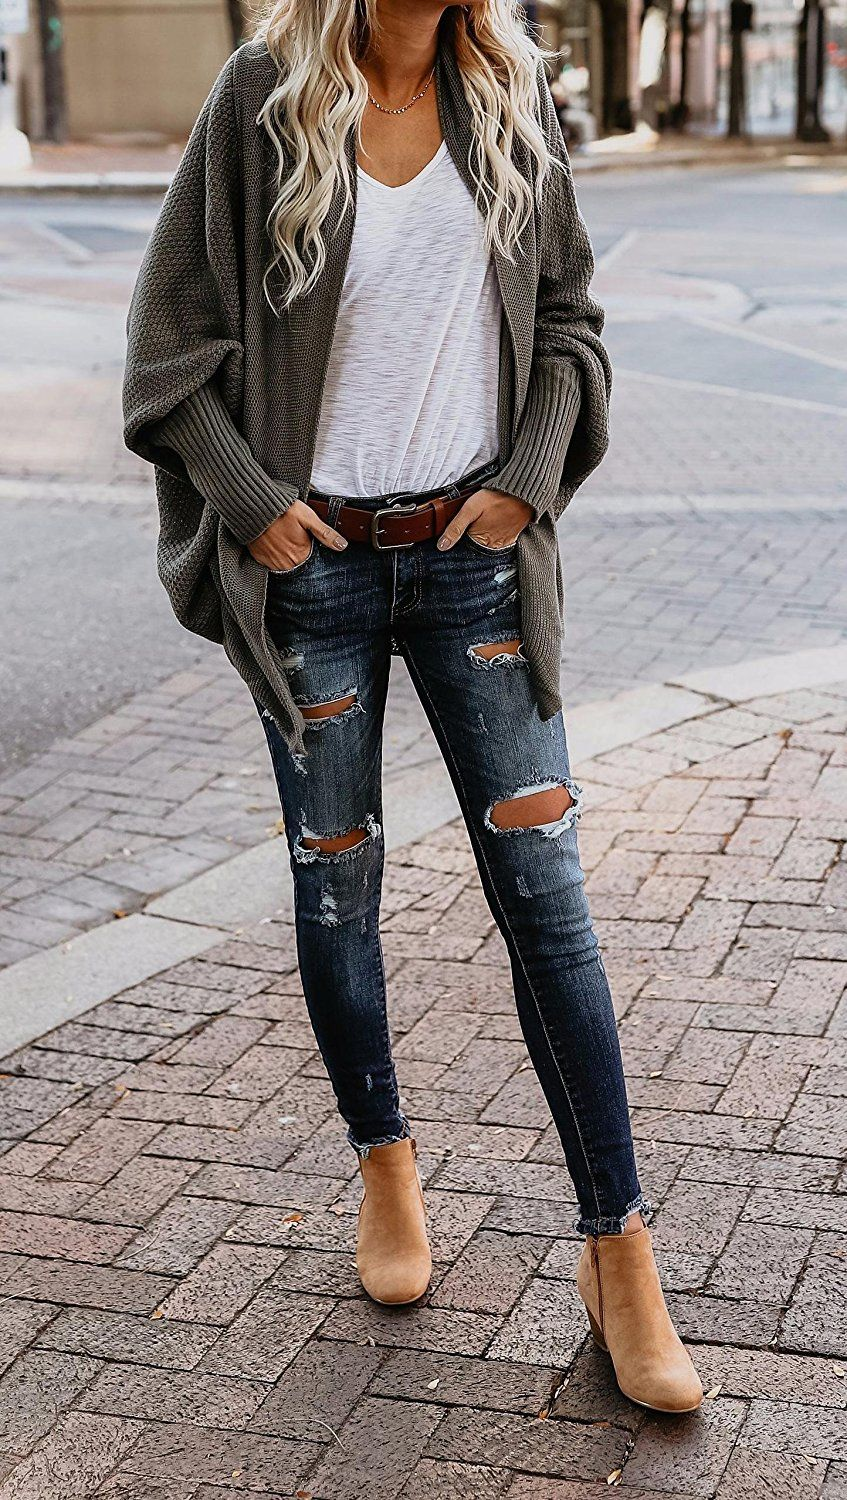 I Bought This Outfit It Looks Amazing On: 20+ Amazing Outfit Ideas For Wearing Oversized Sweaters